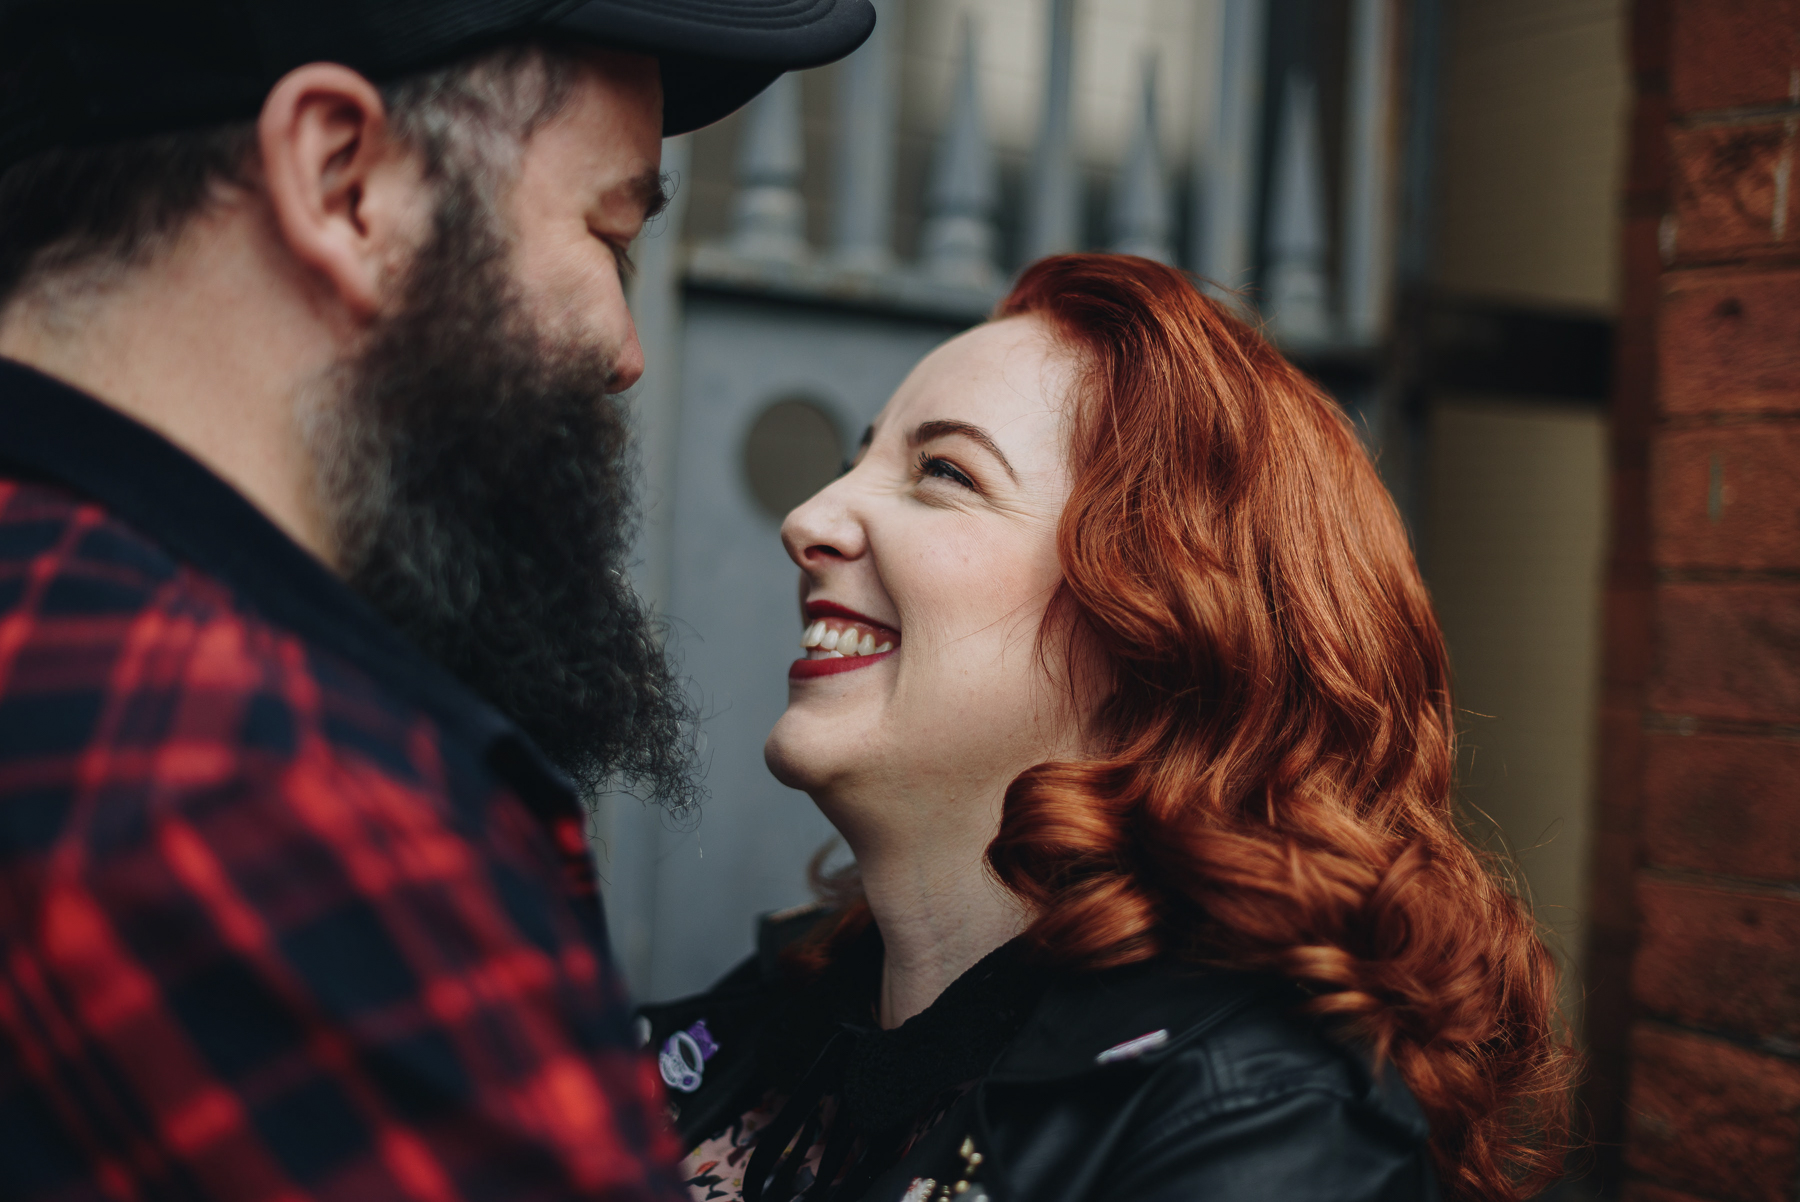 Manchester_Engagement_Photography_Northers_Quarter_The_Pin-Up_Bride-2.jpg